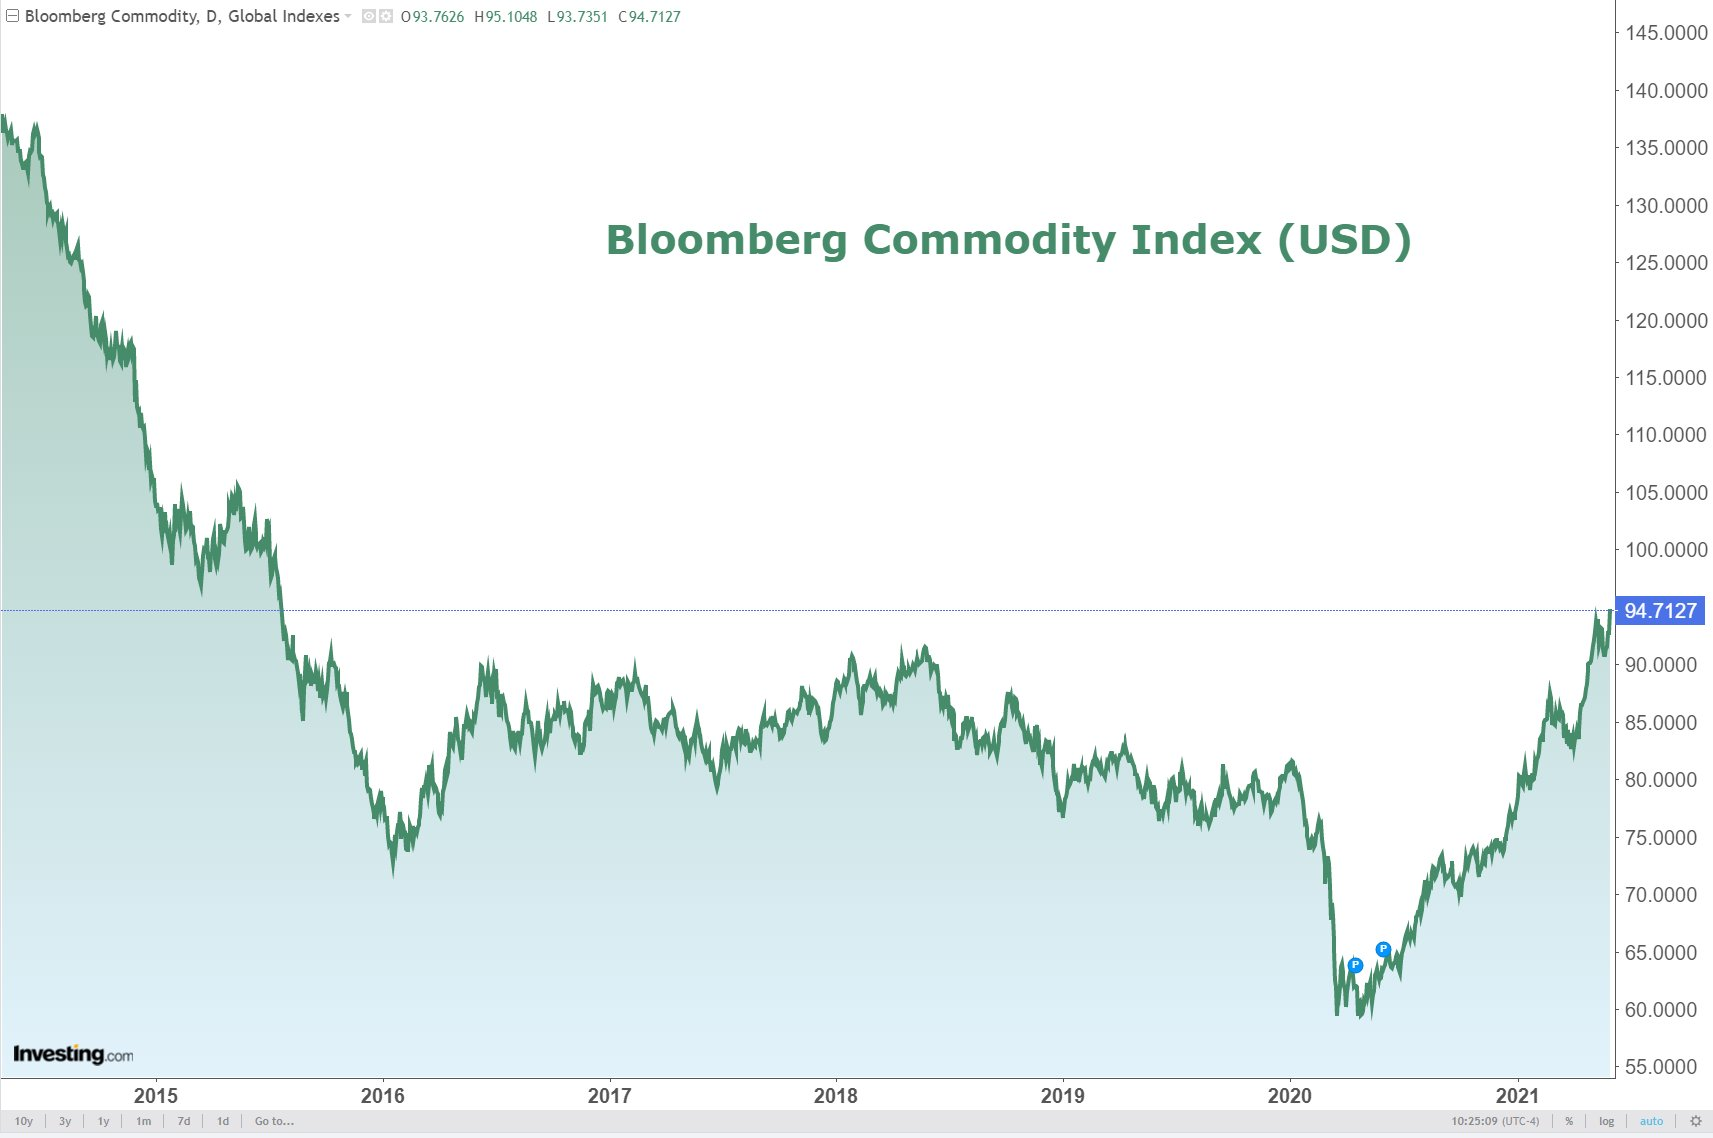 Commodities were up 2% yesterday, up to their highest level in 6 years